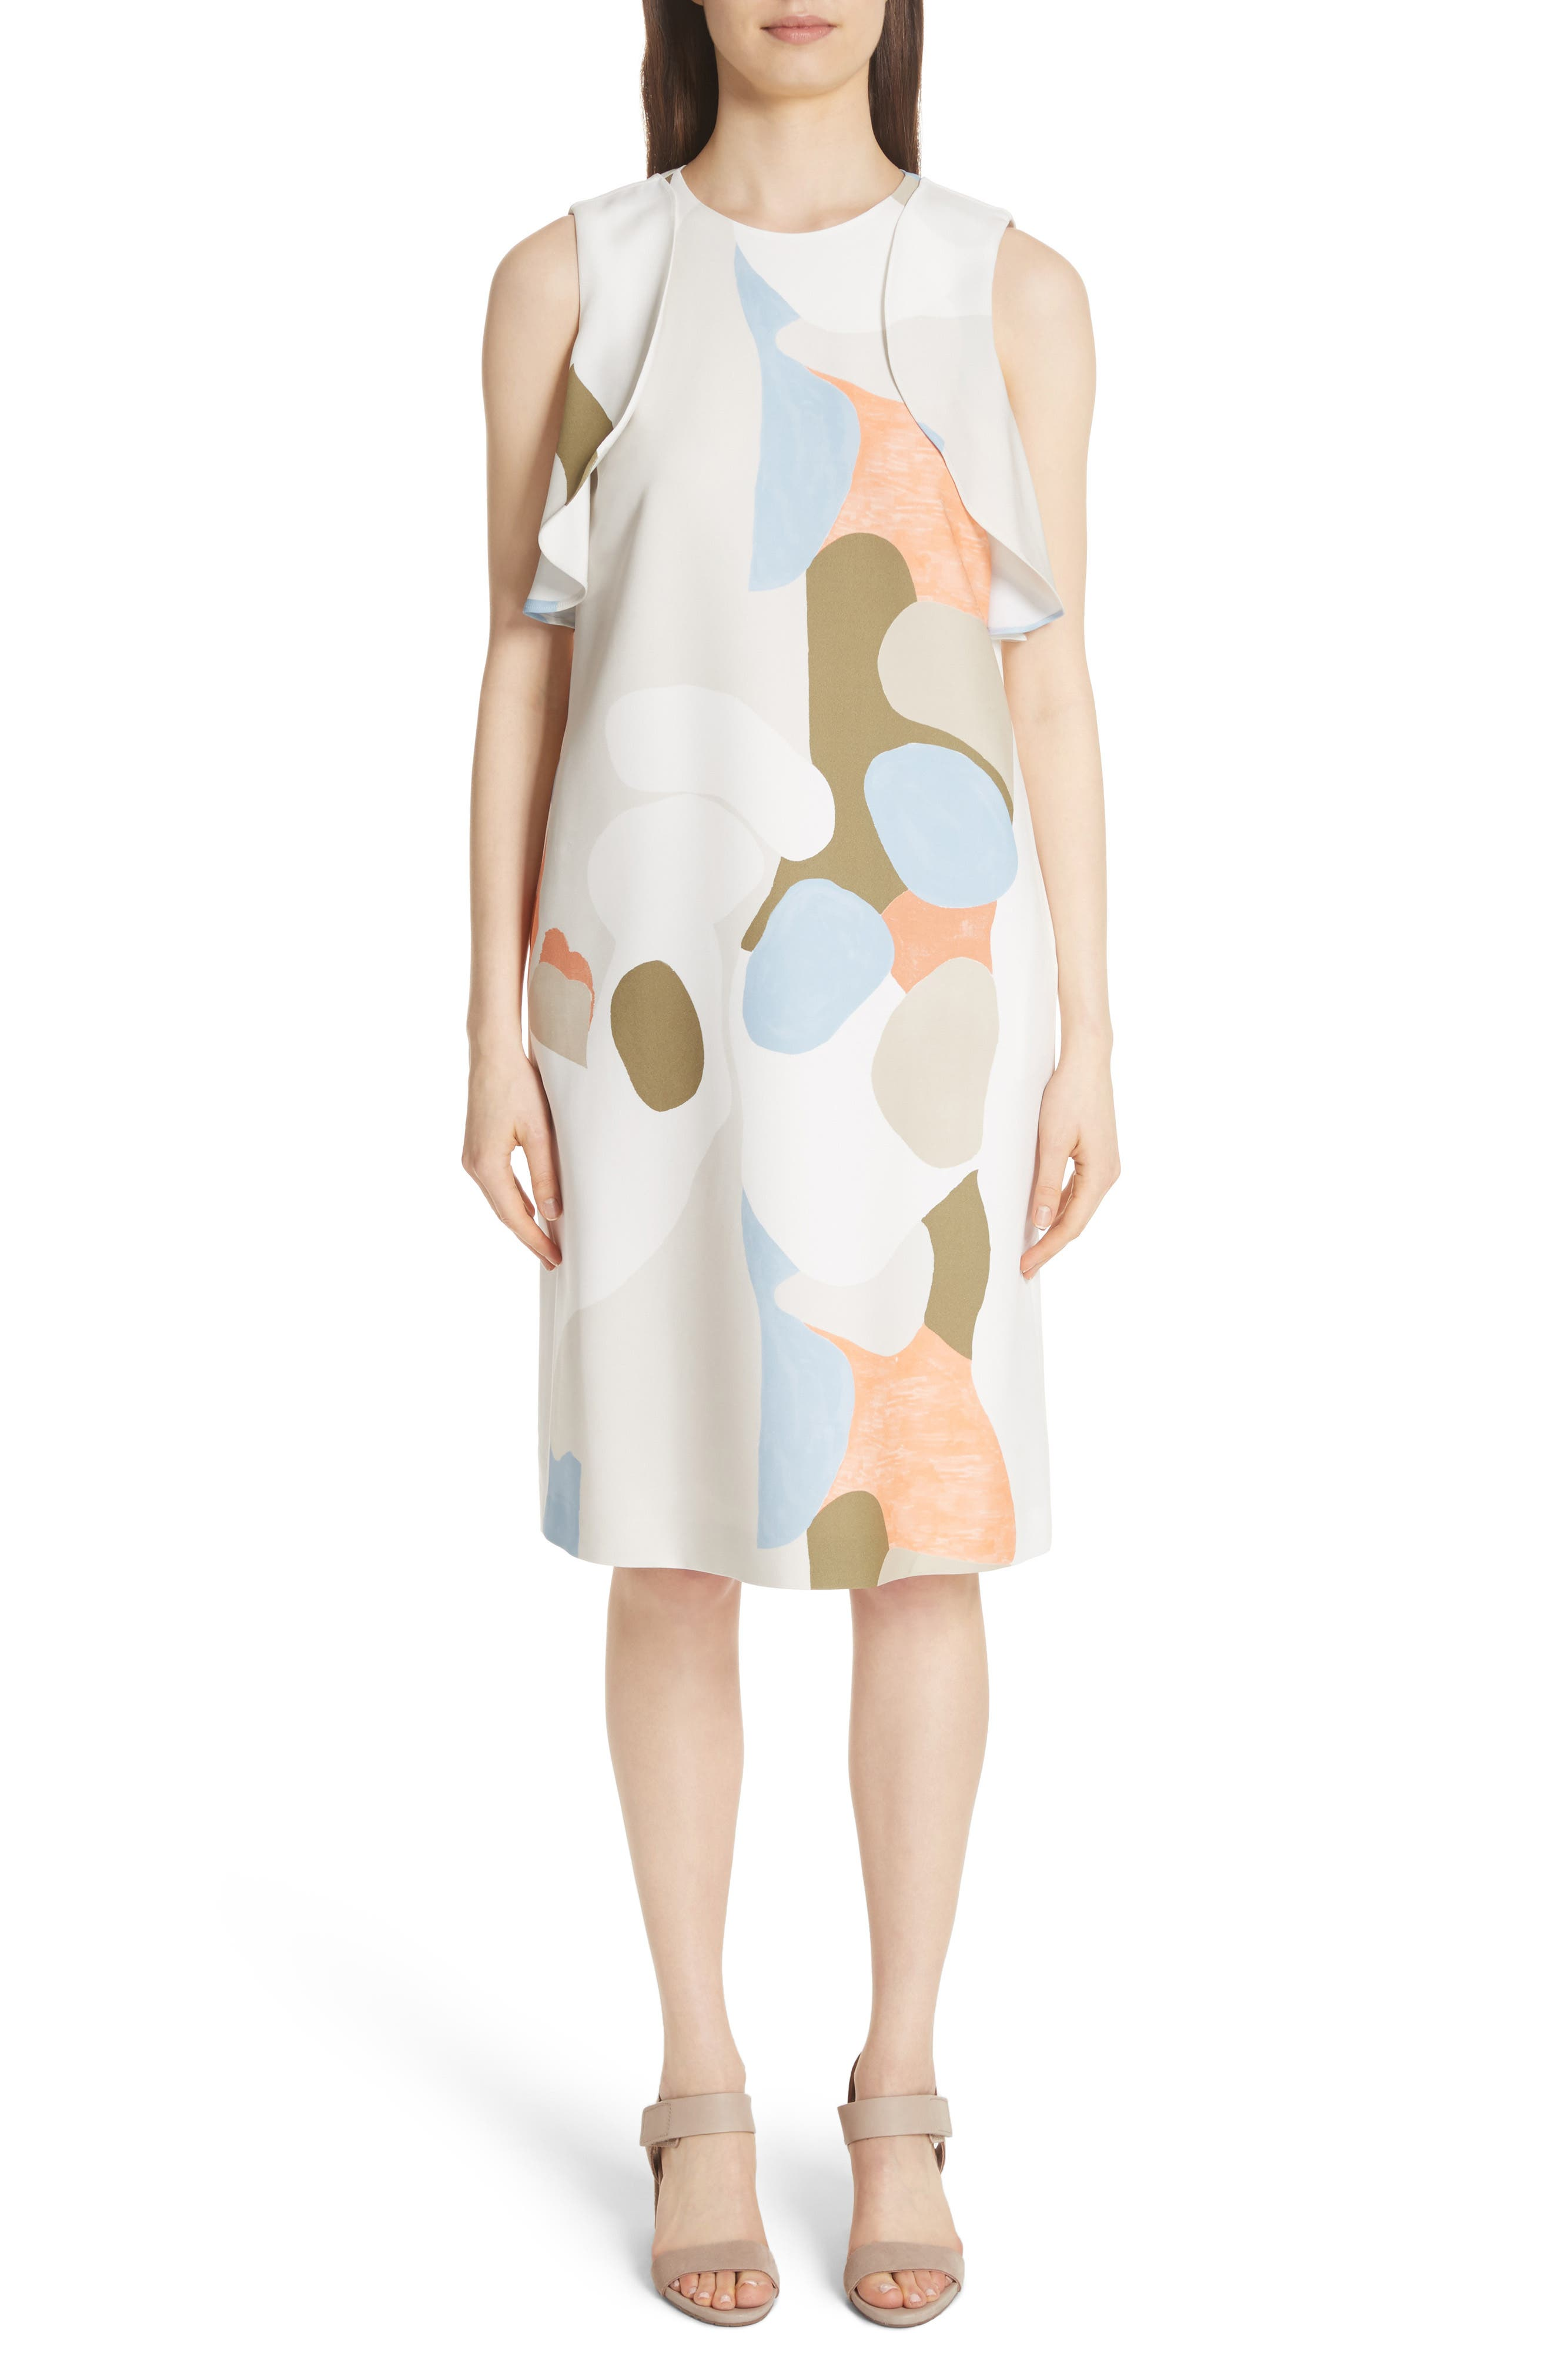 LAFAYETTE 148 NEW YORK Landscape Expression Print Ruffle Dress, Main, color, 909